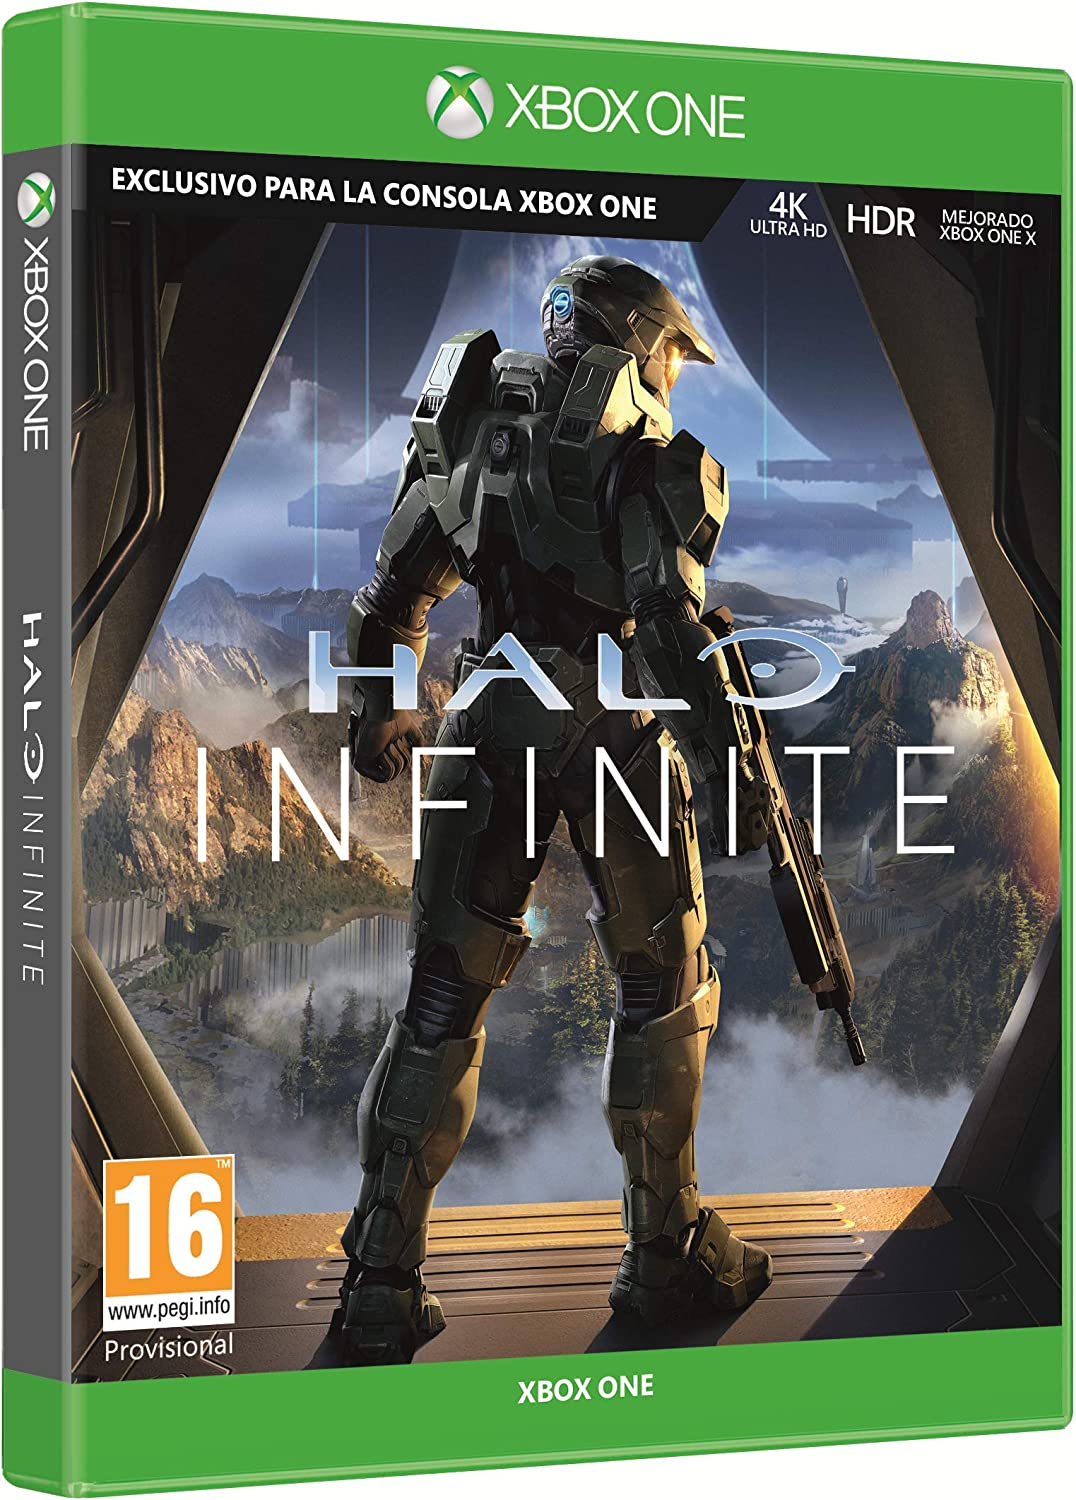 Halo Infinite - Xbox One: Amazon.es: Videojuegos